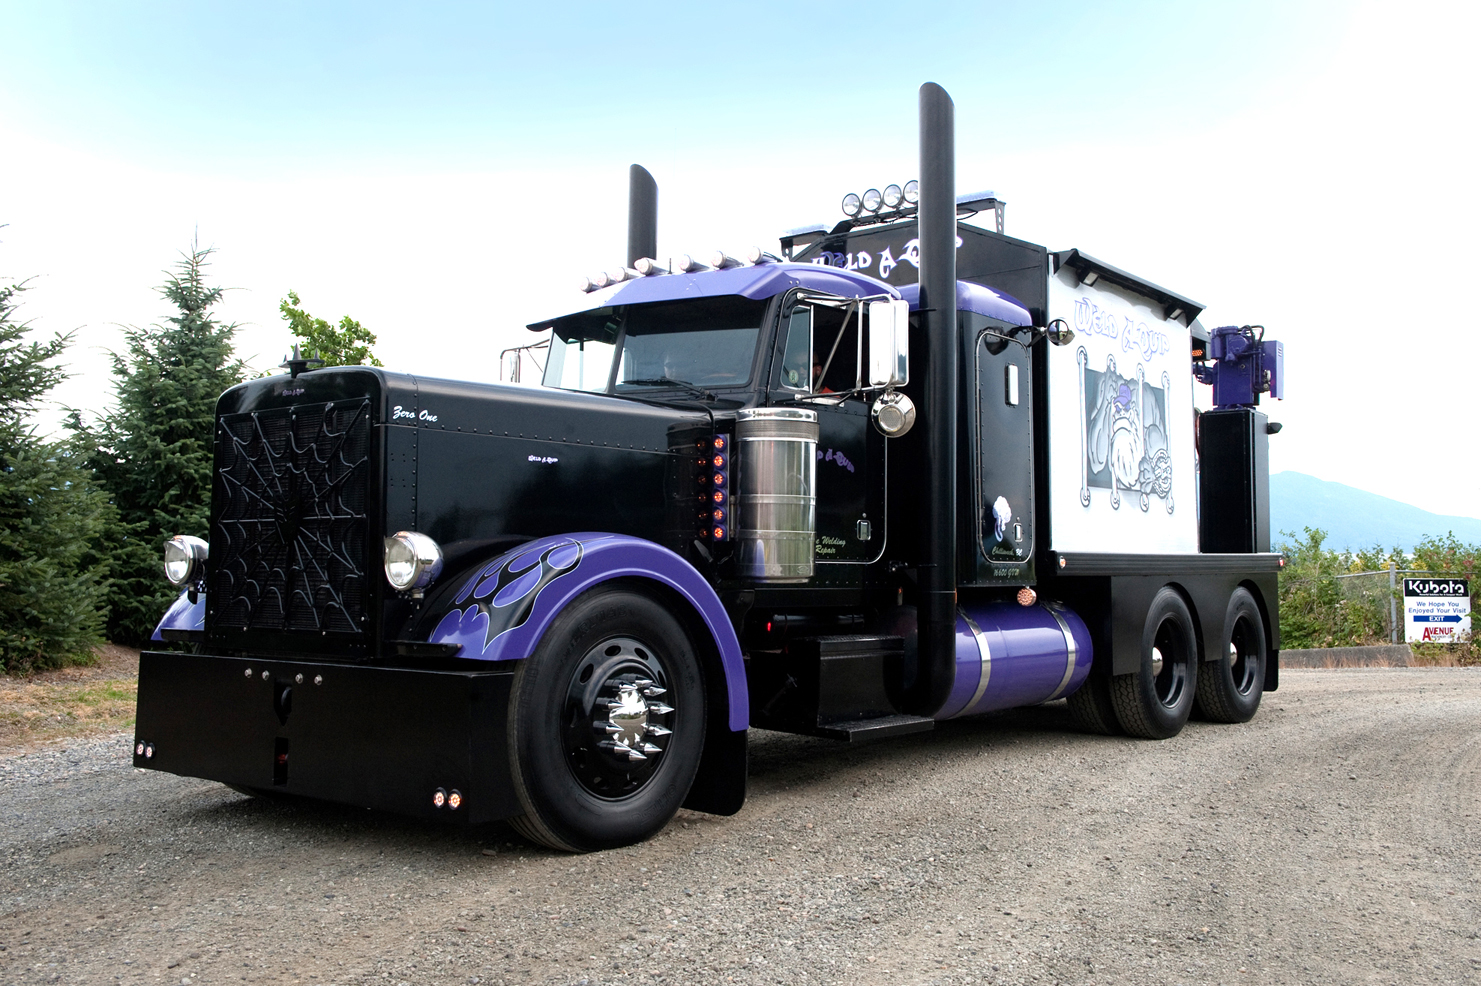 Peterbilt 379 Wallpapers - WallpaperSafari